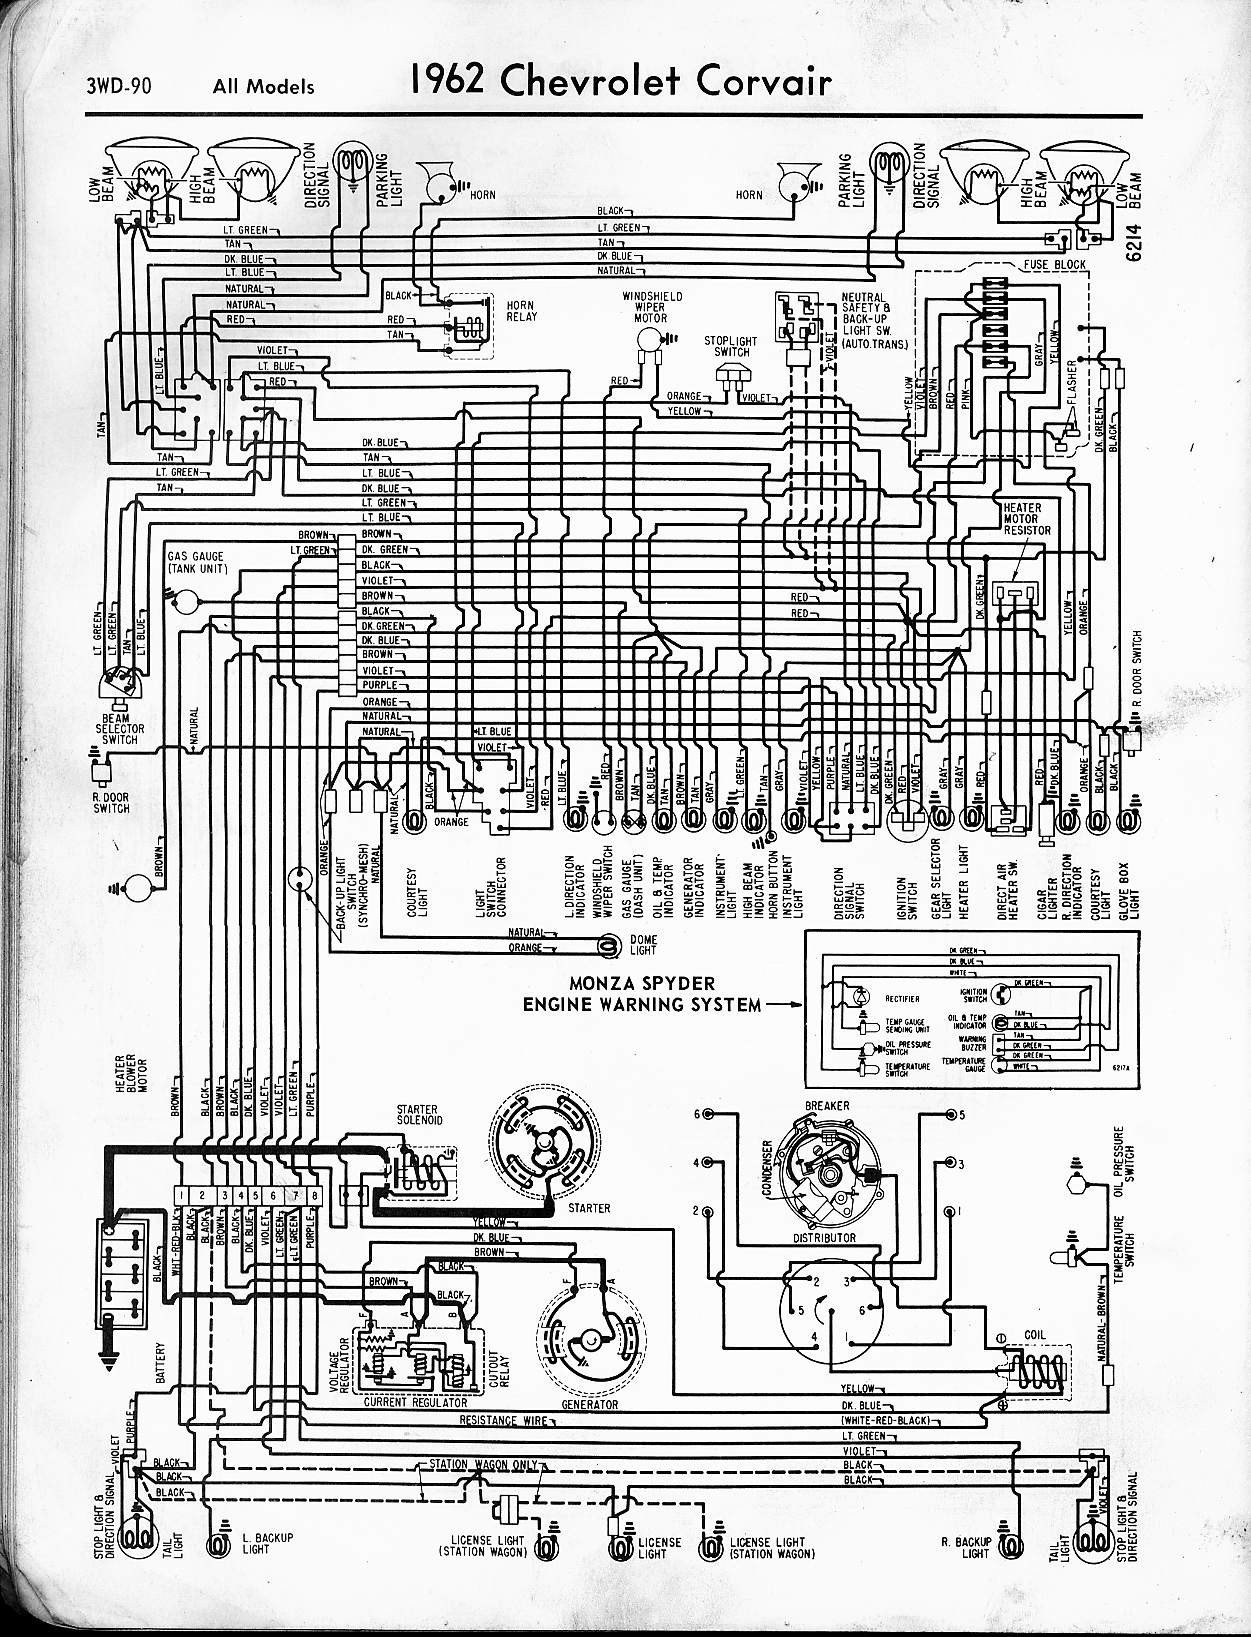 1962 Corvette Wiring Diagram Vehicle Diagrams Vanagon Alternator 213 8155 Chevy Truck Volkswagen Rh Banyan Palace Schematic 1984